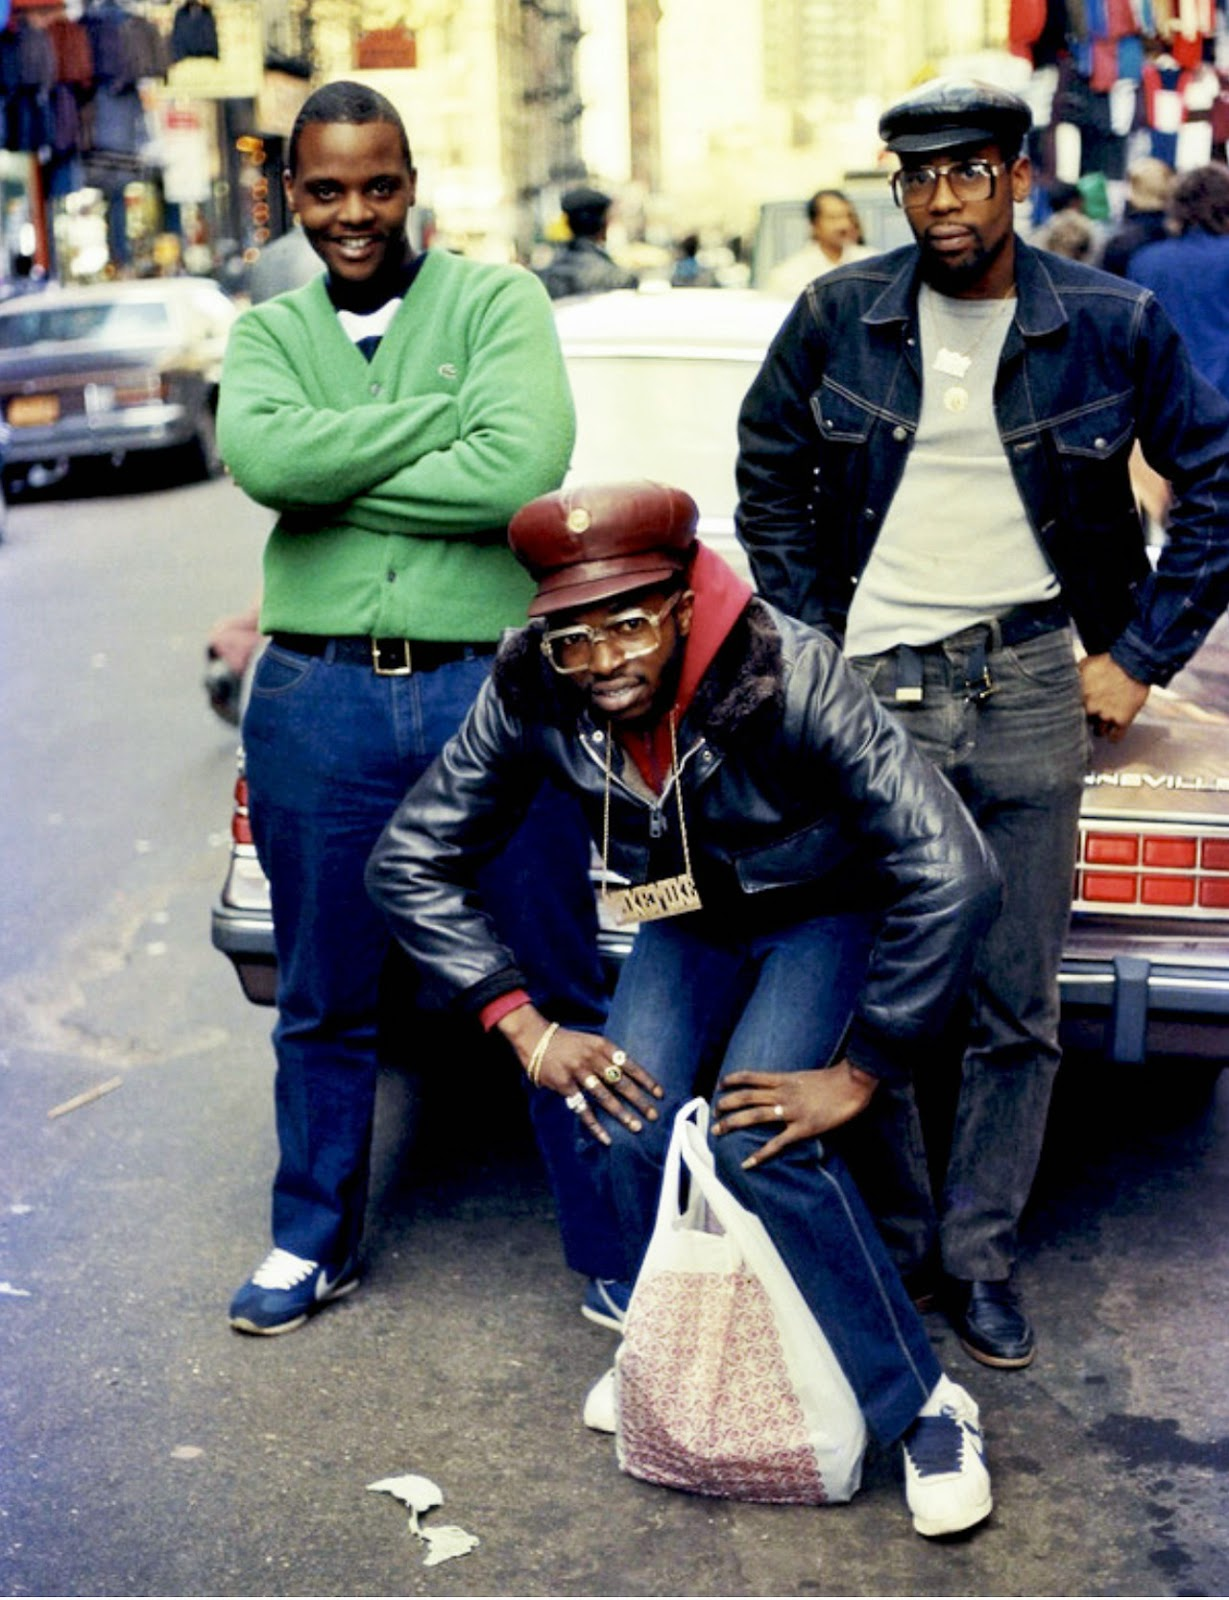 vintage everyday new york�s hiphop scene from the 1980s